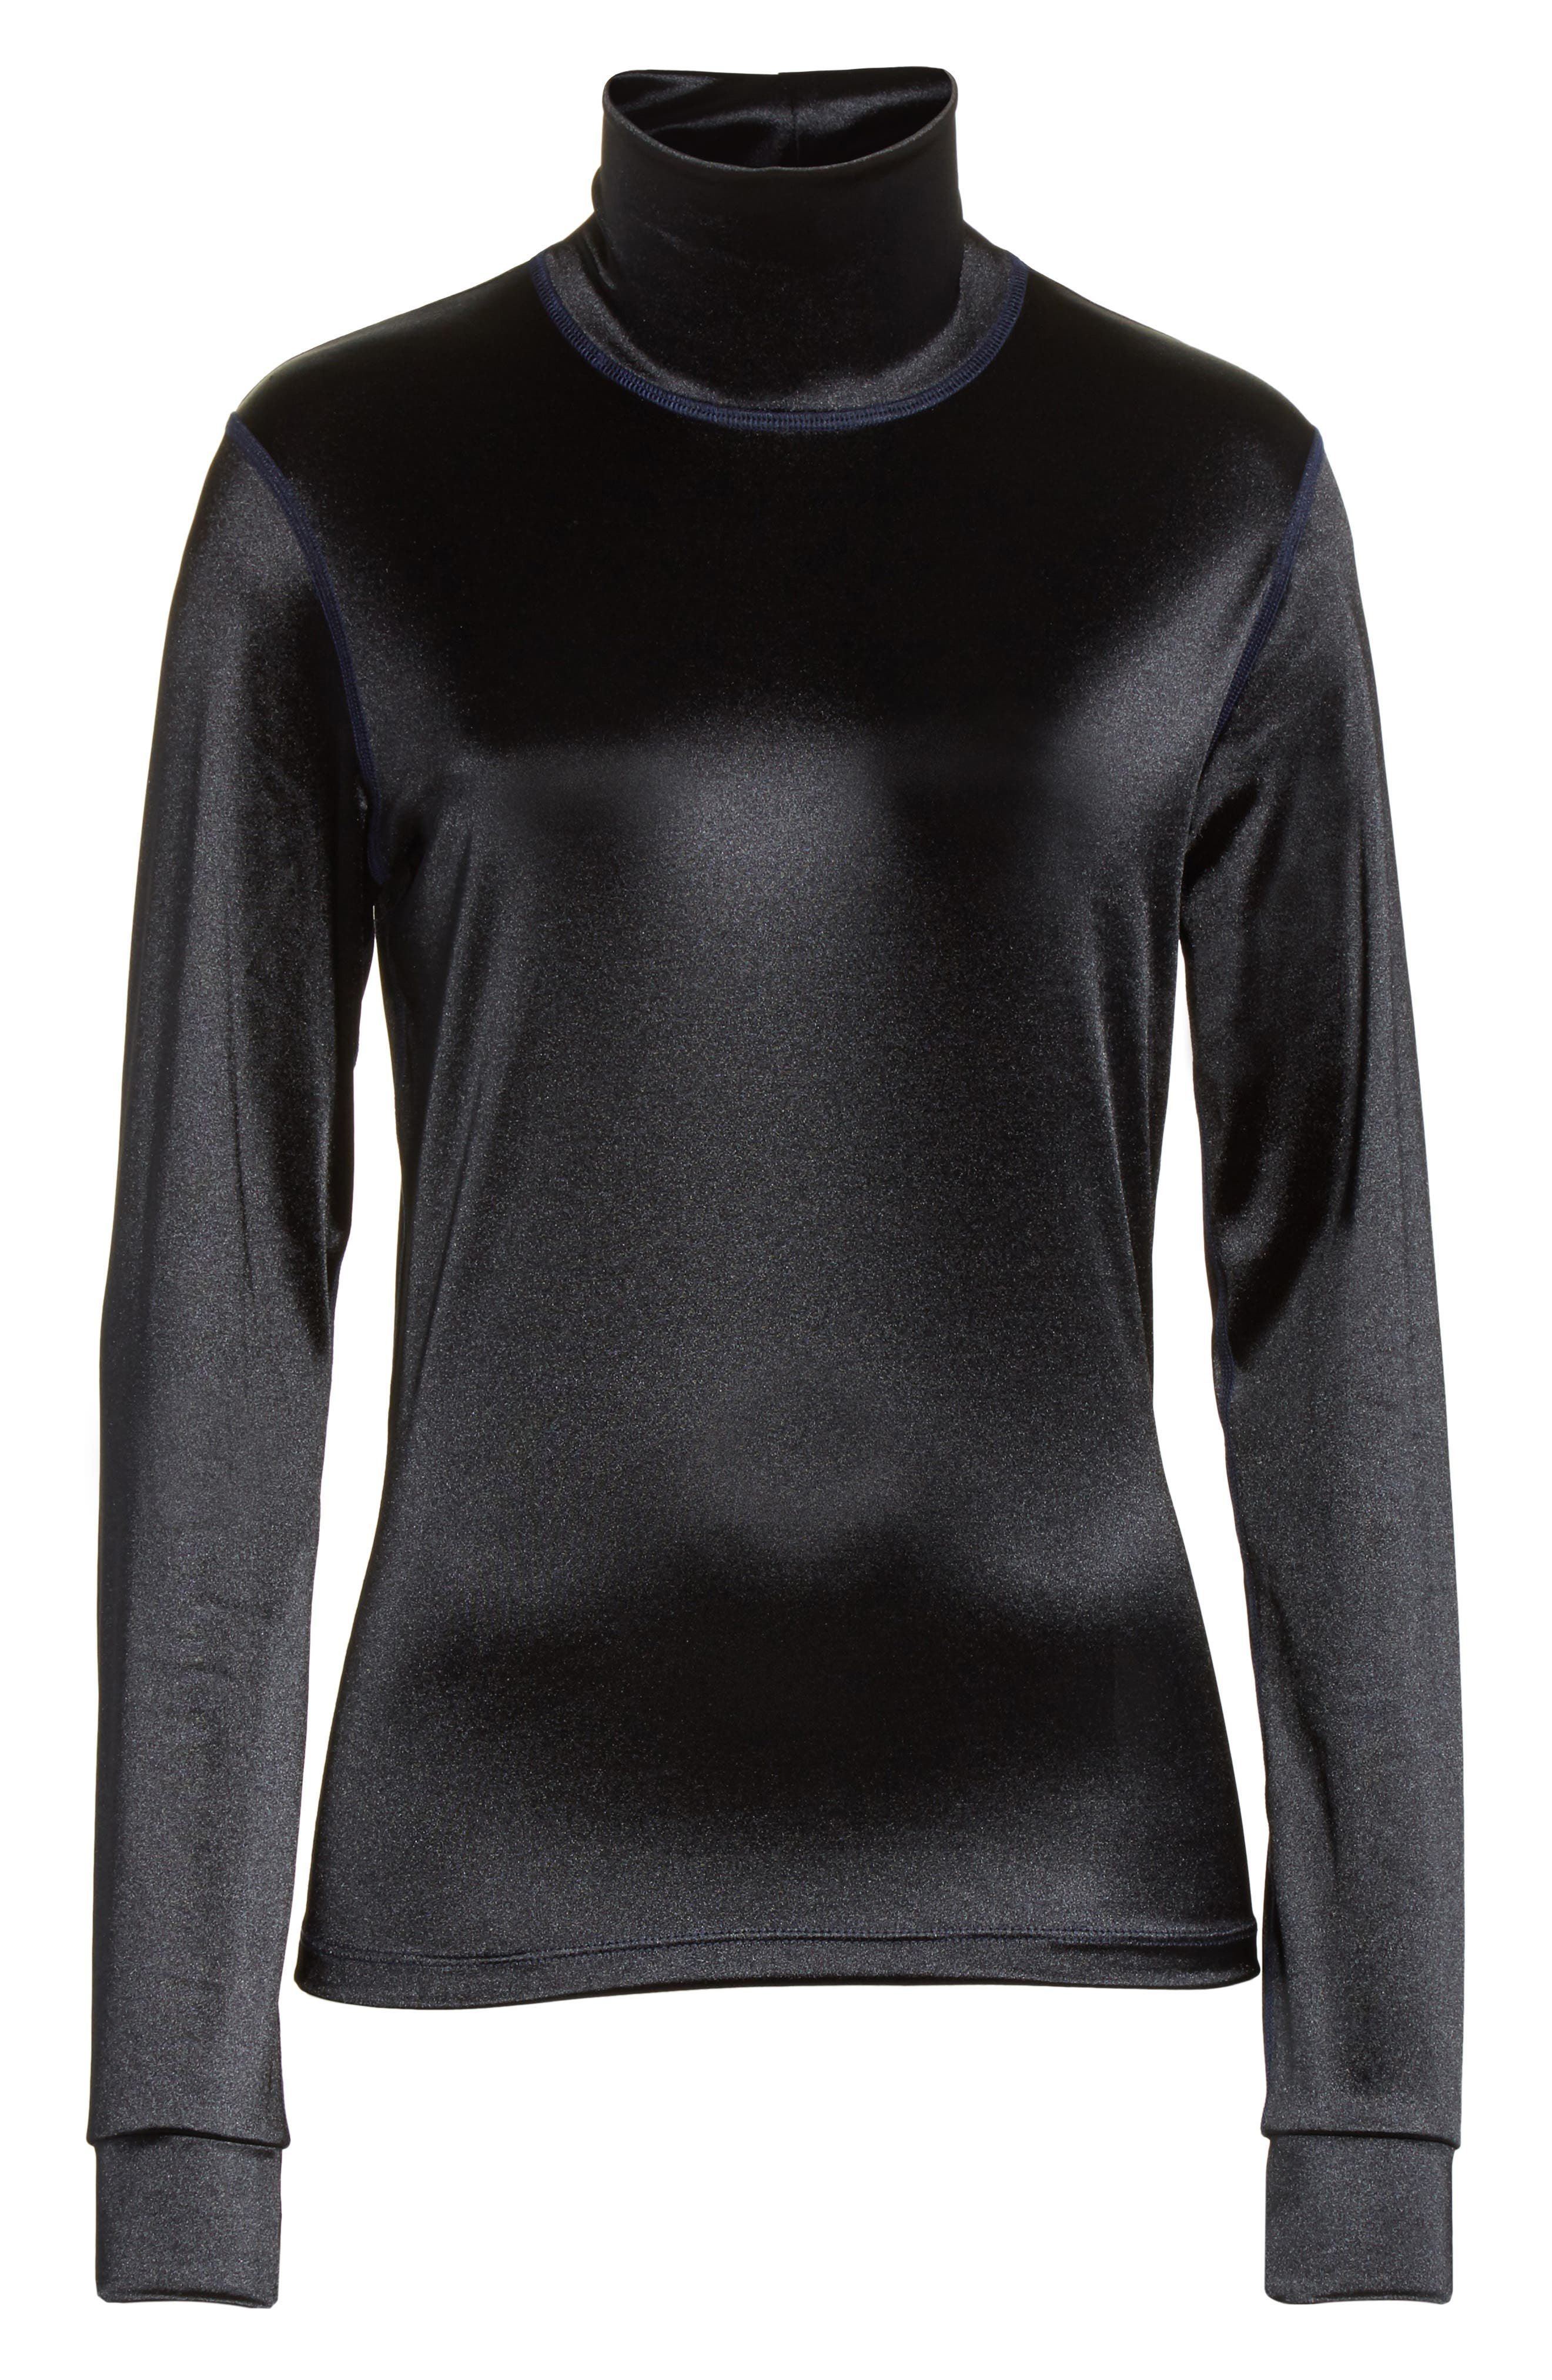 Sleek Stretch Turtleneck,                             Alternate thumbnail 6, color,                             001